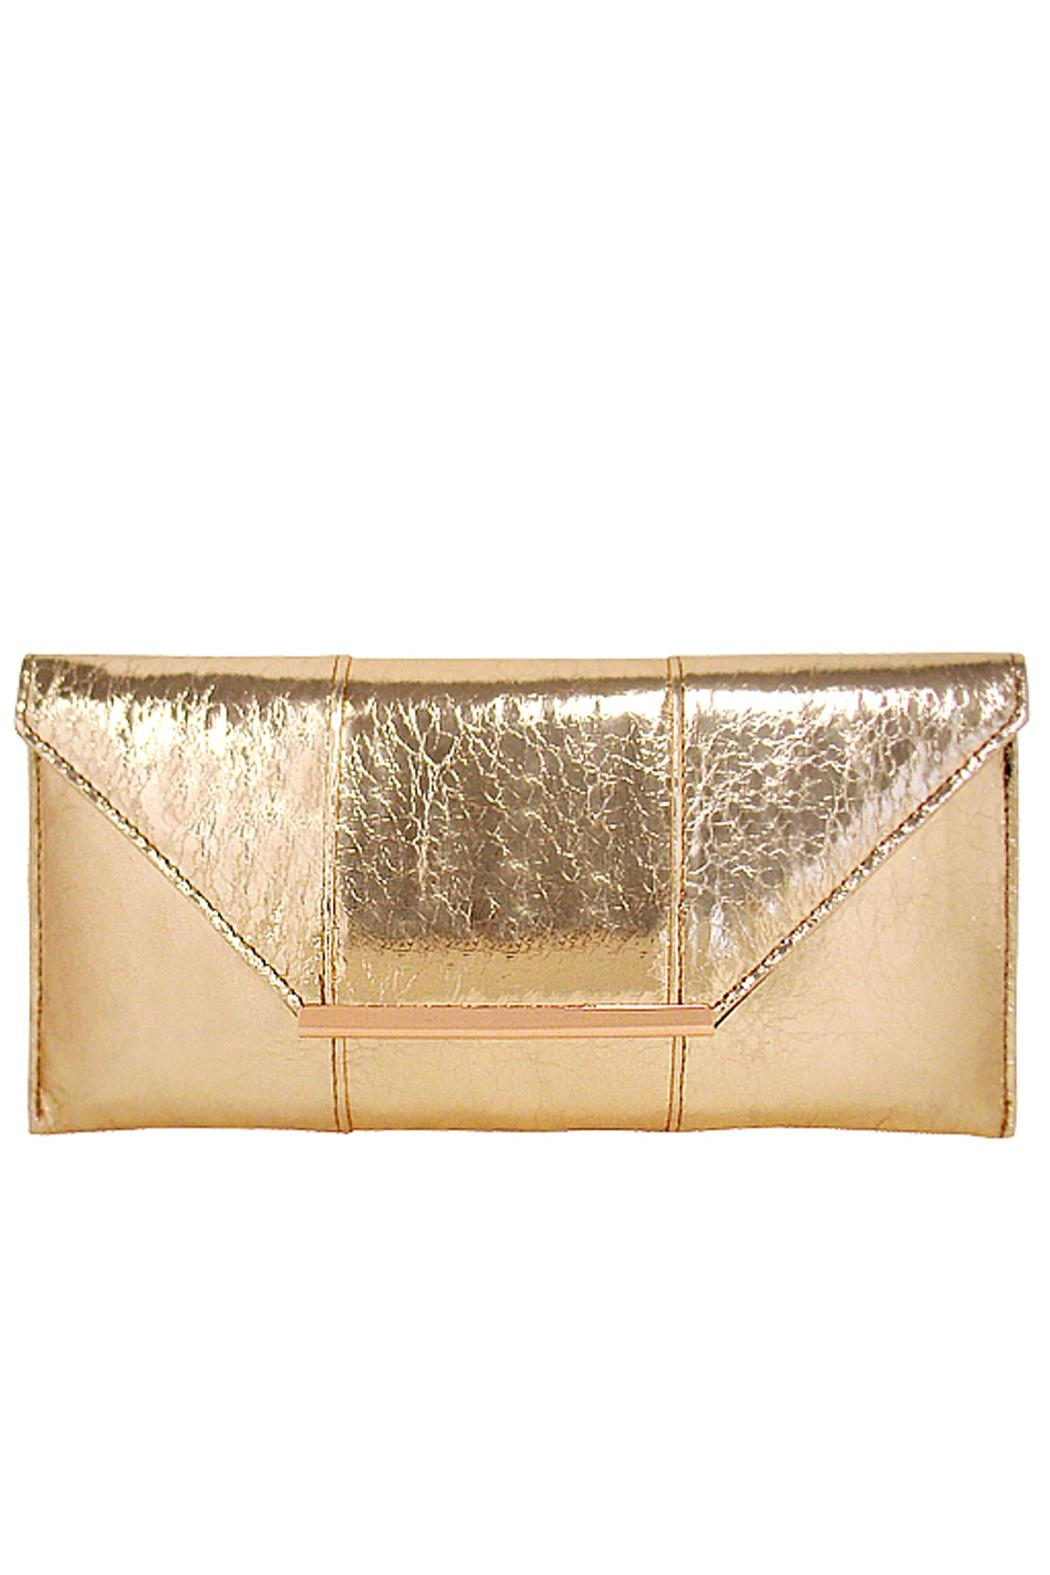 Wild Lilies Jewelry  Metallic Envelope Clutch - Main Image